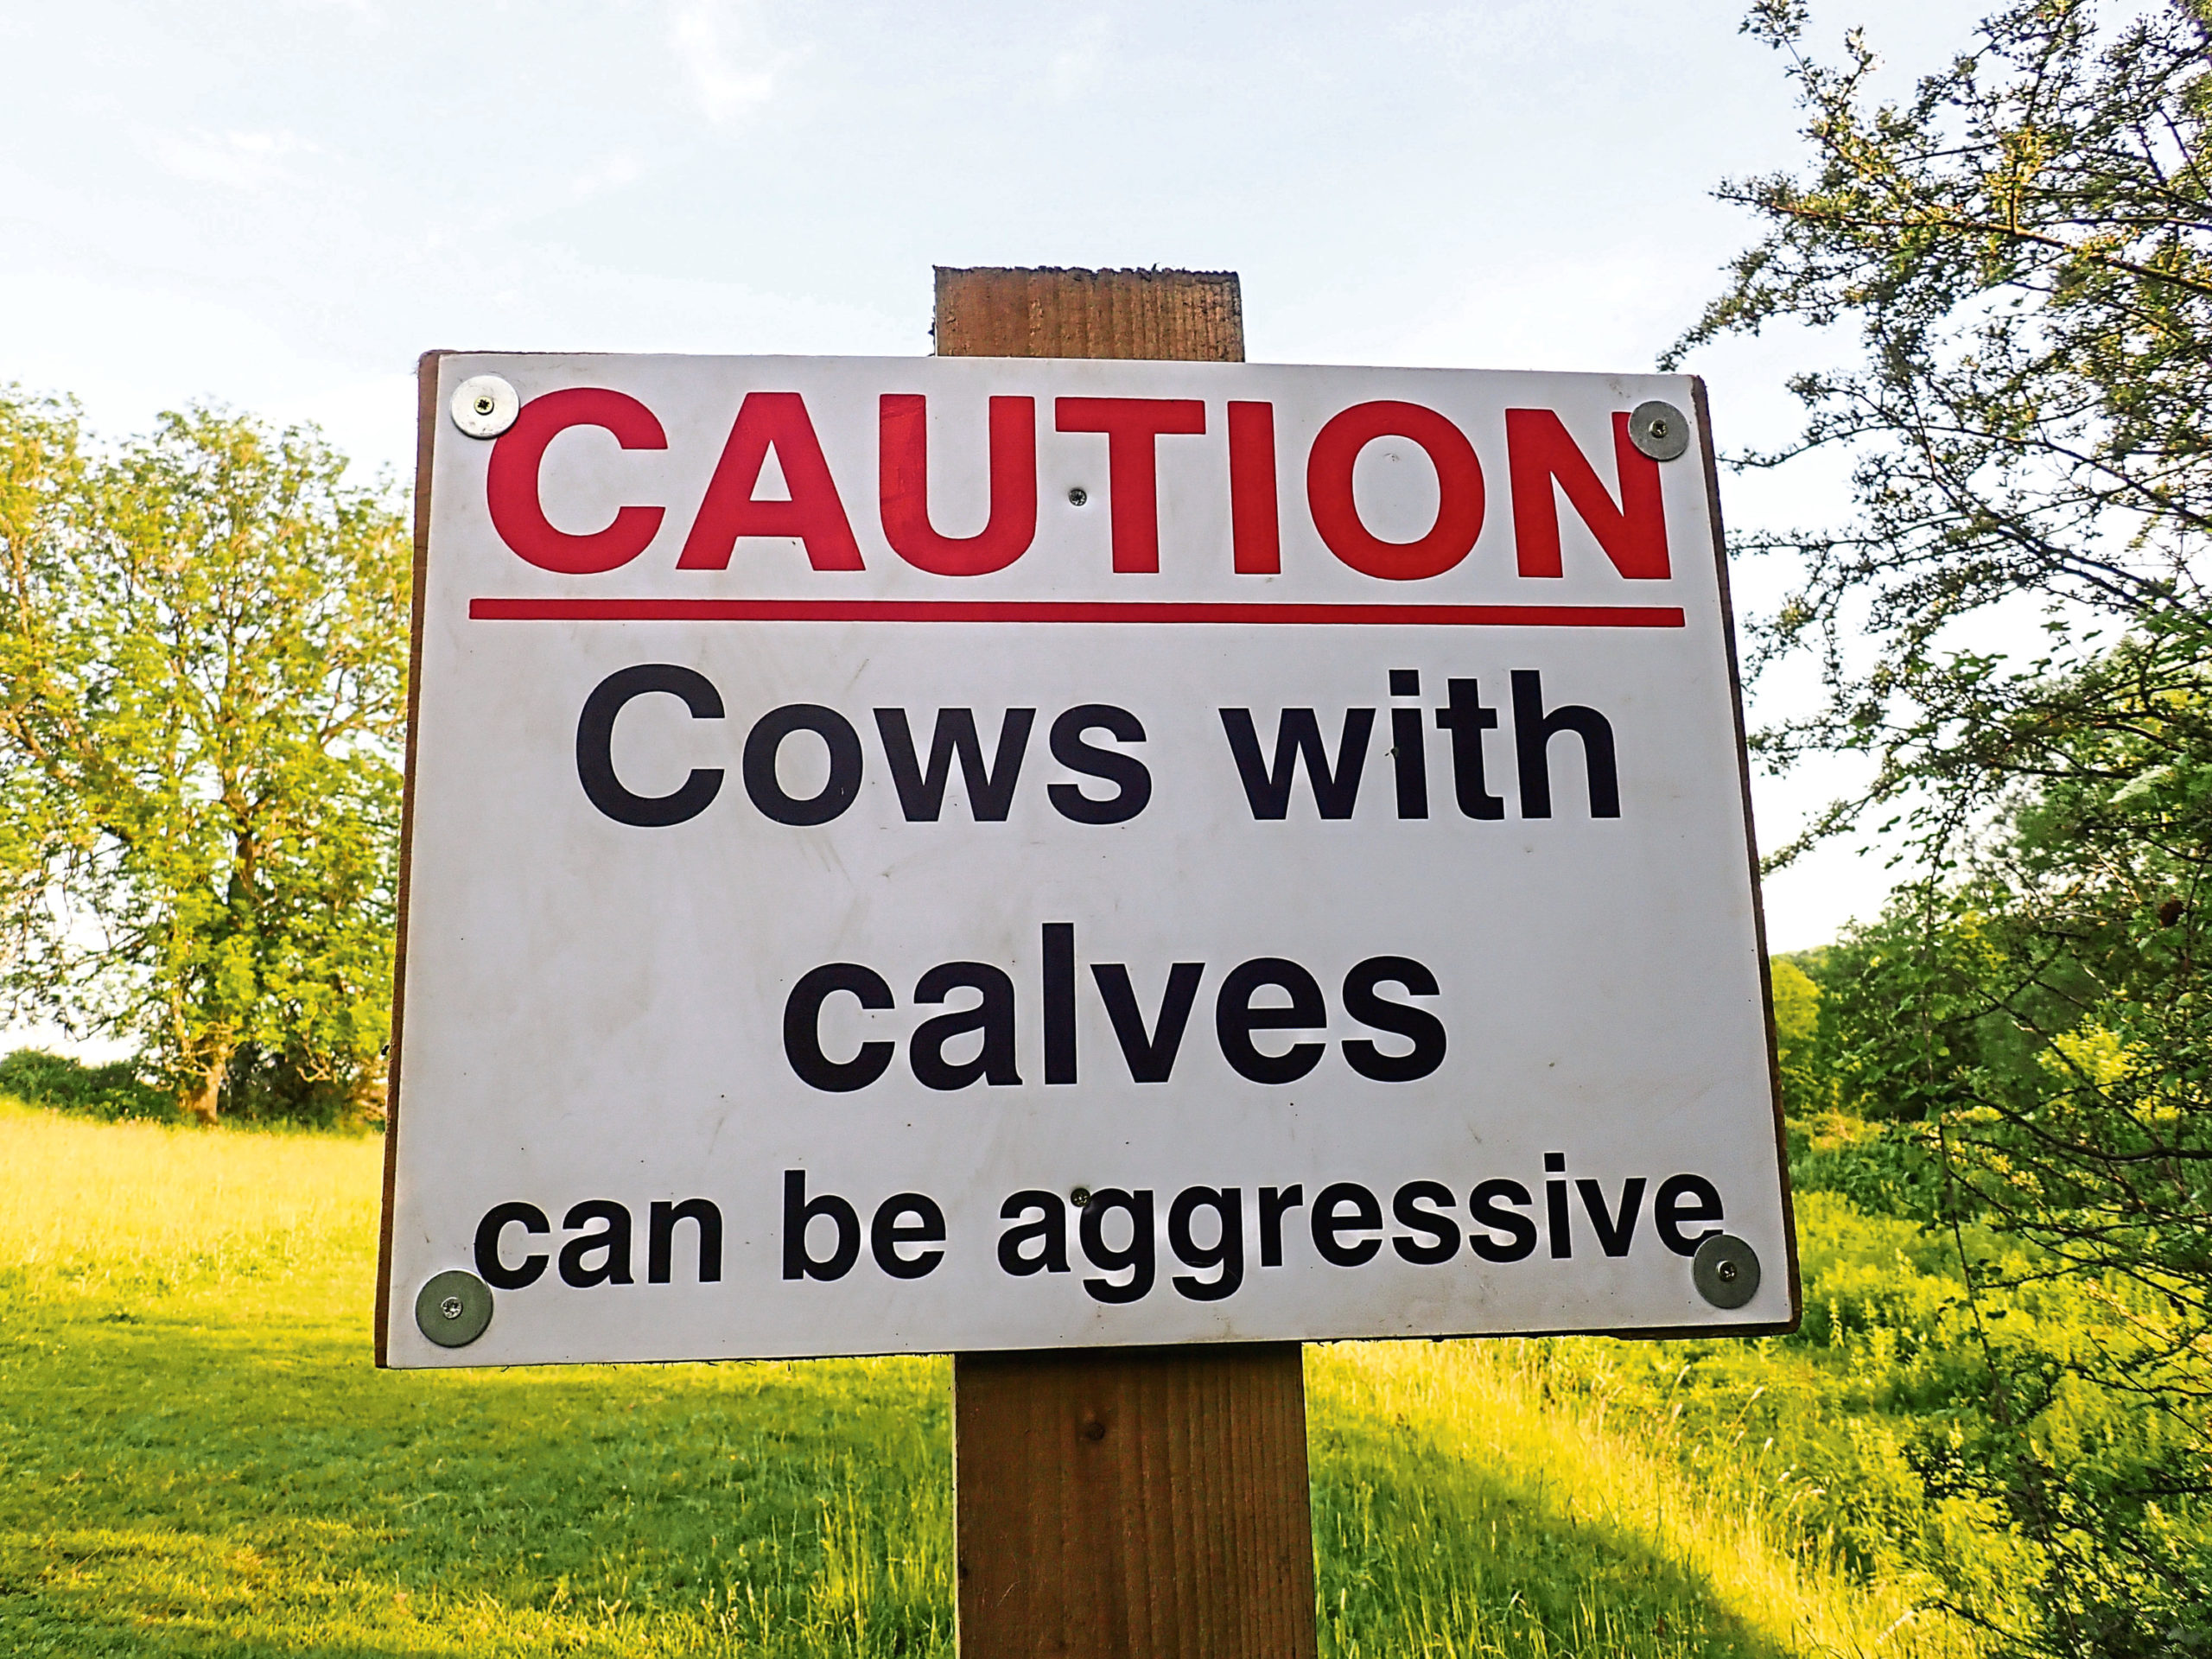 Farmers are being encouraged to erect helpful signs for walkers who may want to access their land.